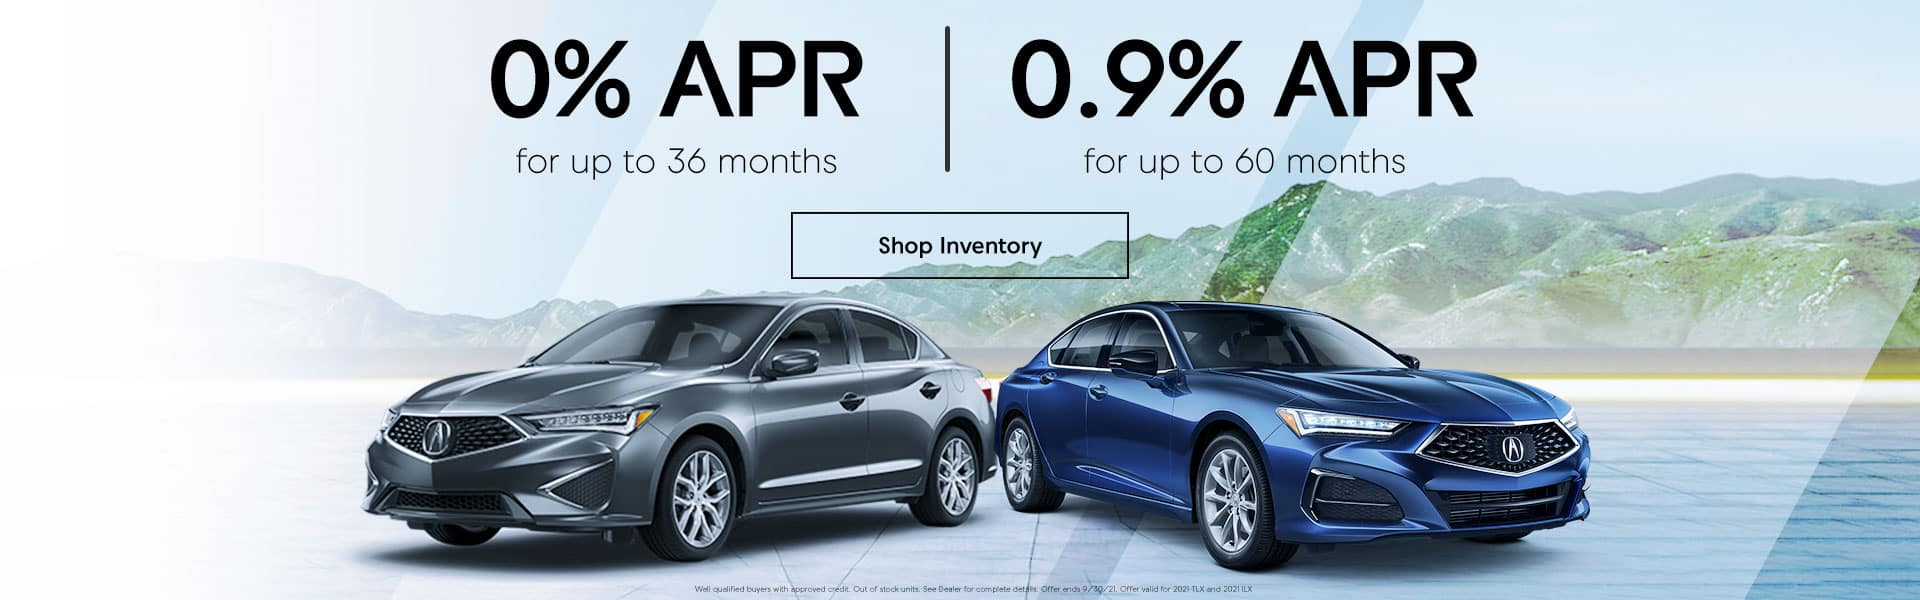 0% up to 36 mos. 0.9% up to 60 months.